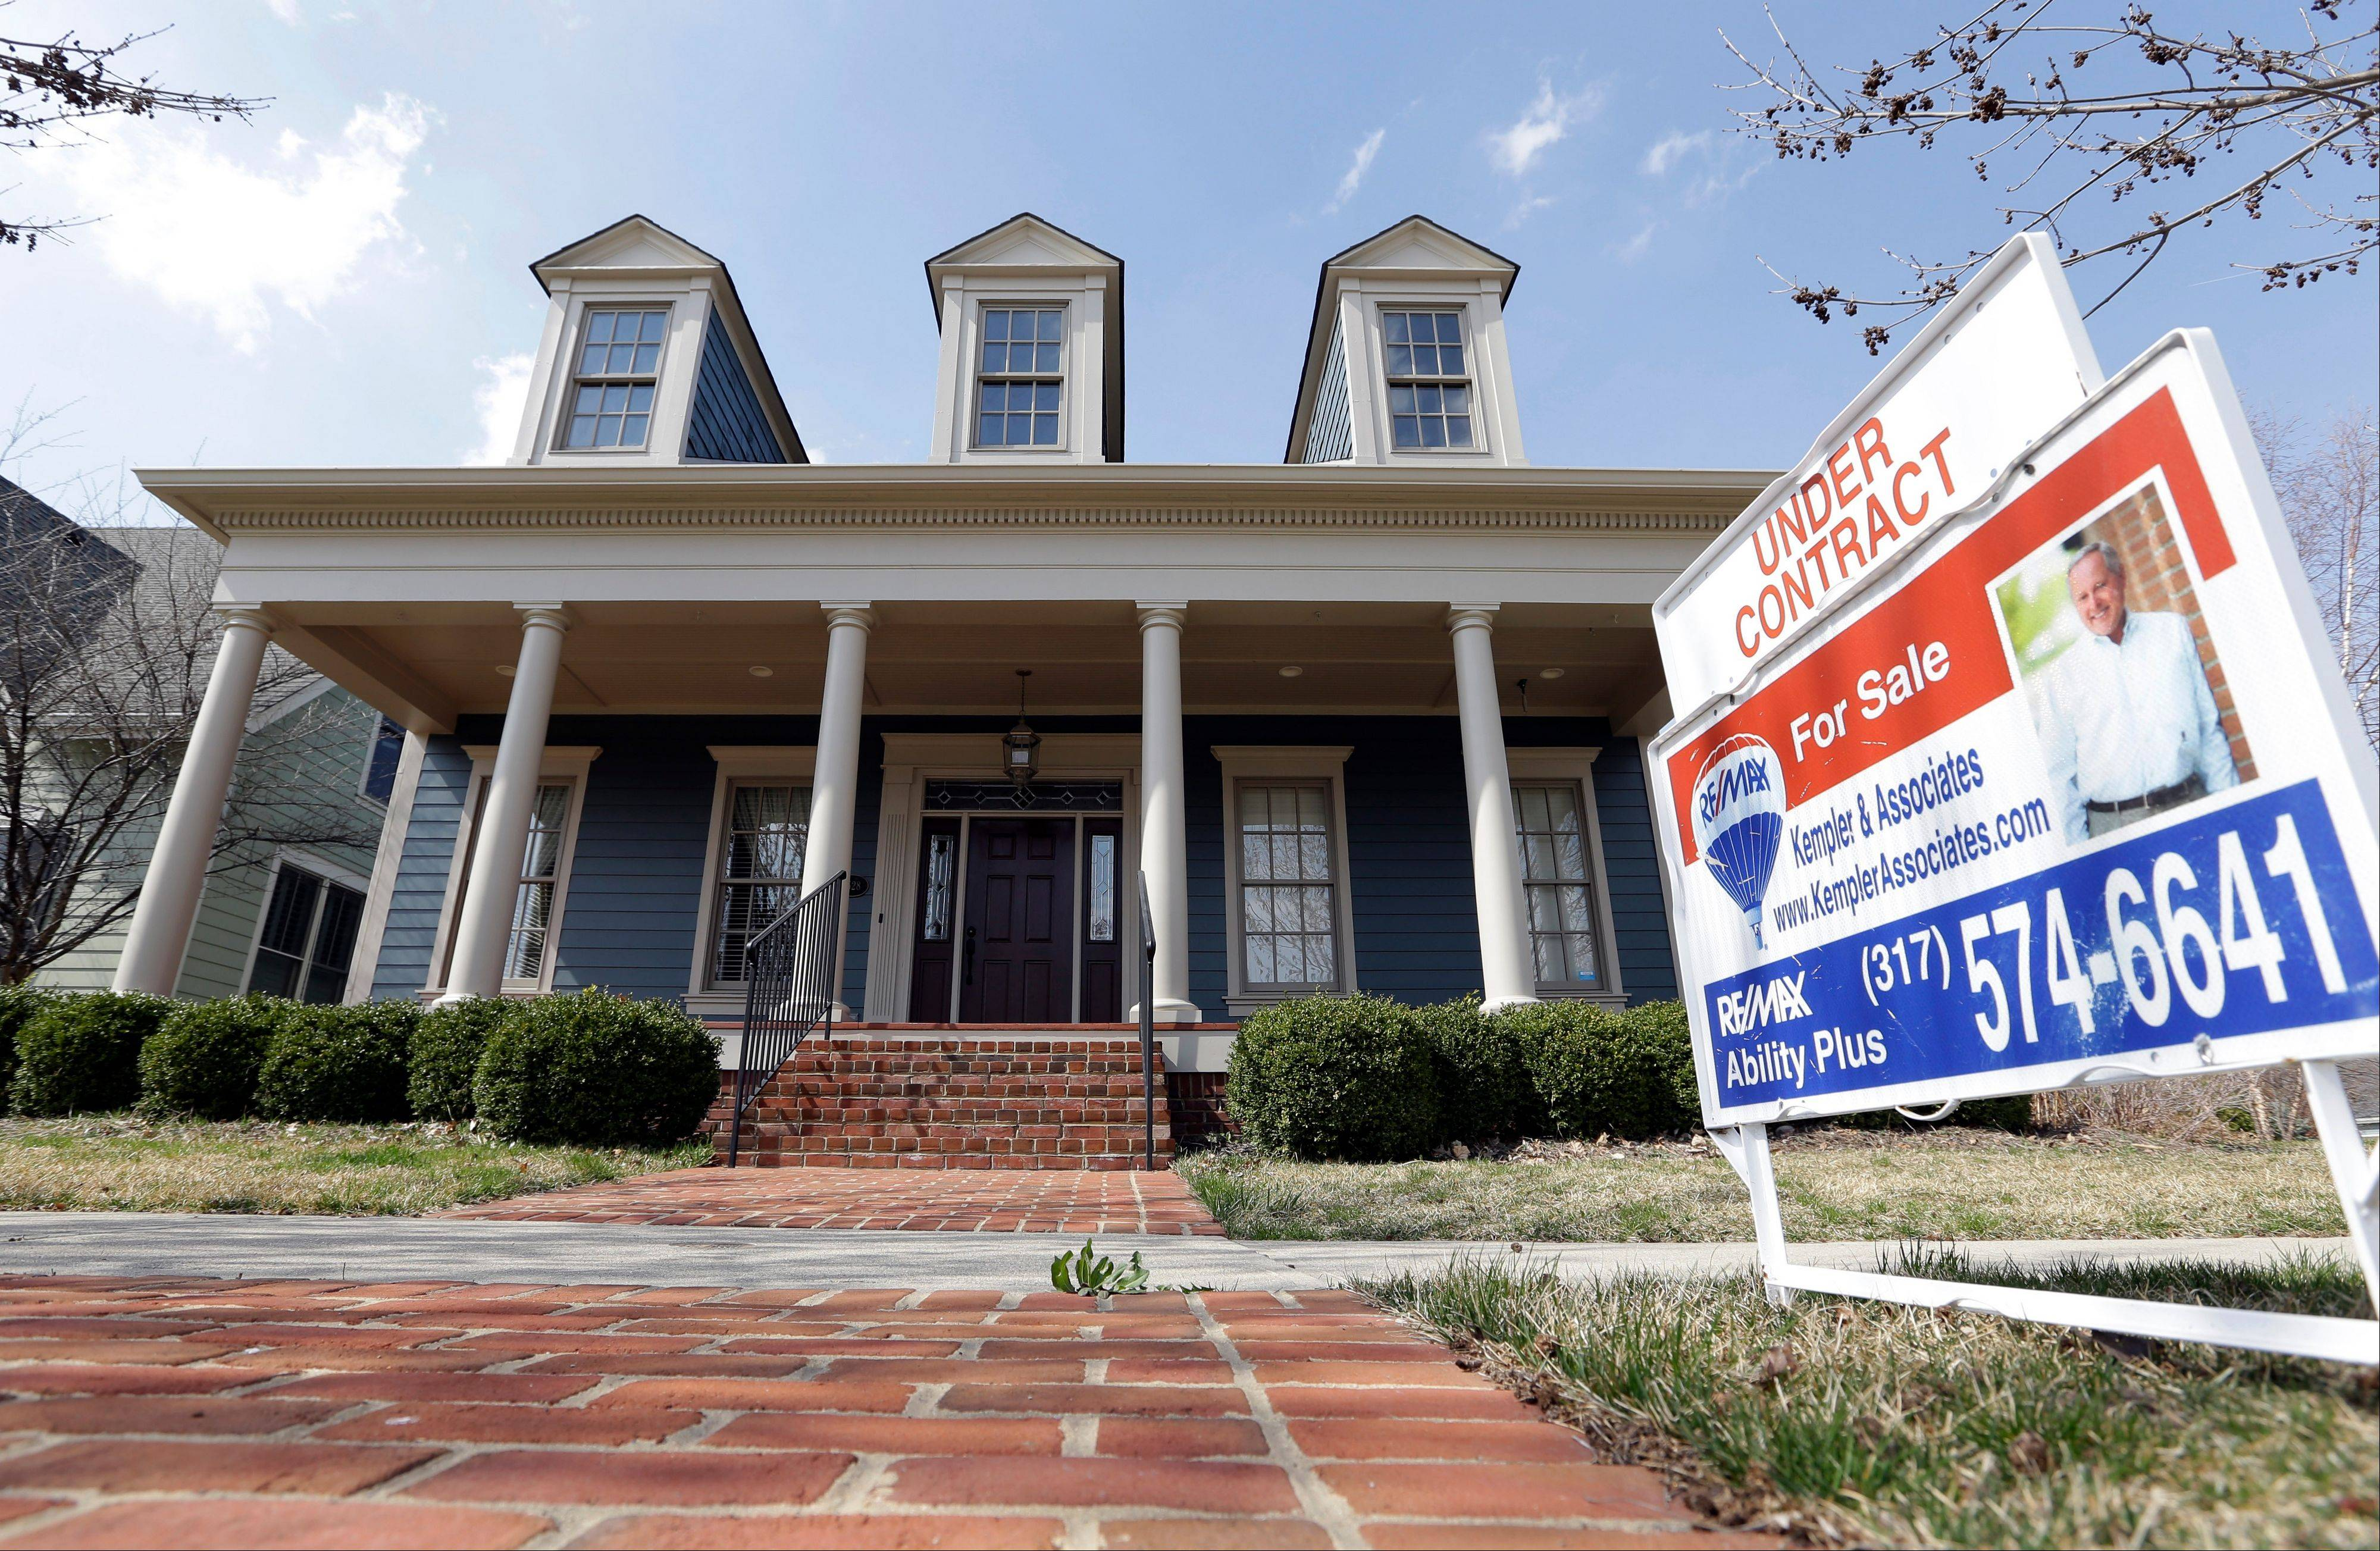 U.S. home prices soared 12.1 percent in April from a year earlier, the biggest gain since February 2006, as more buyers competed for fewer homes.